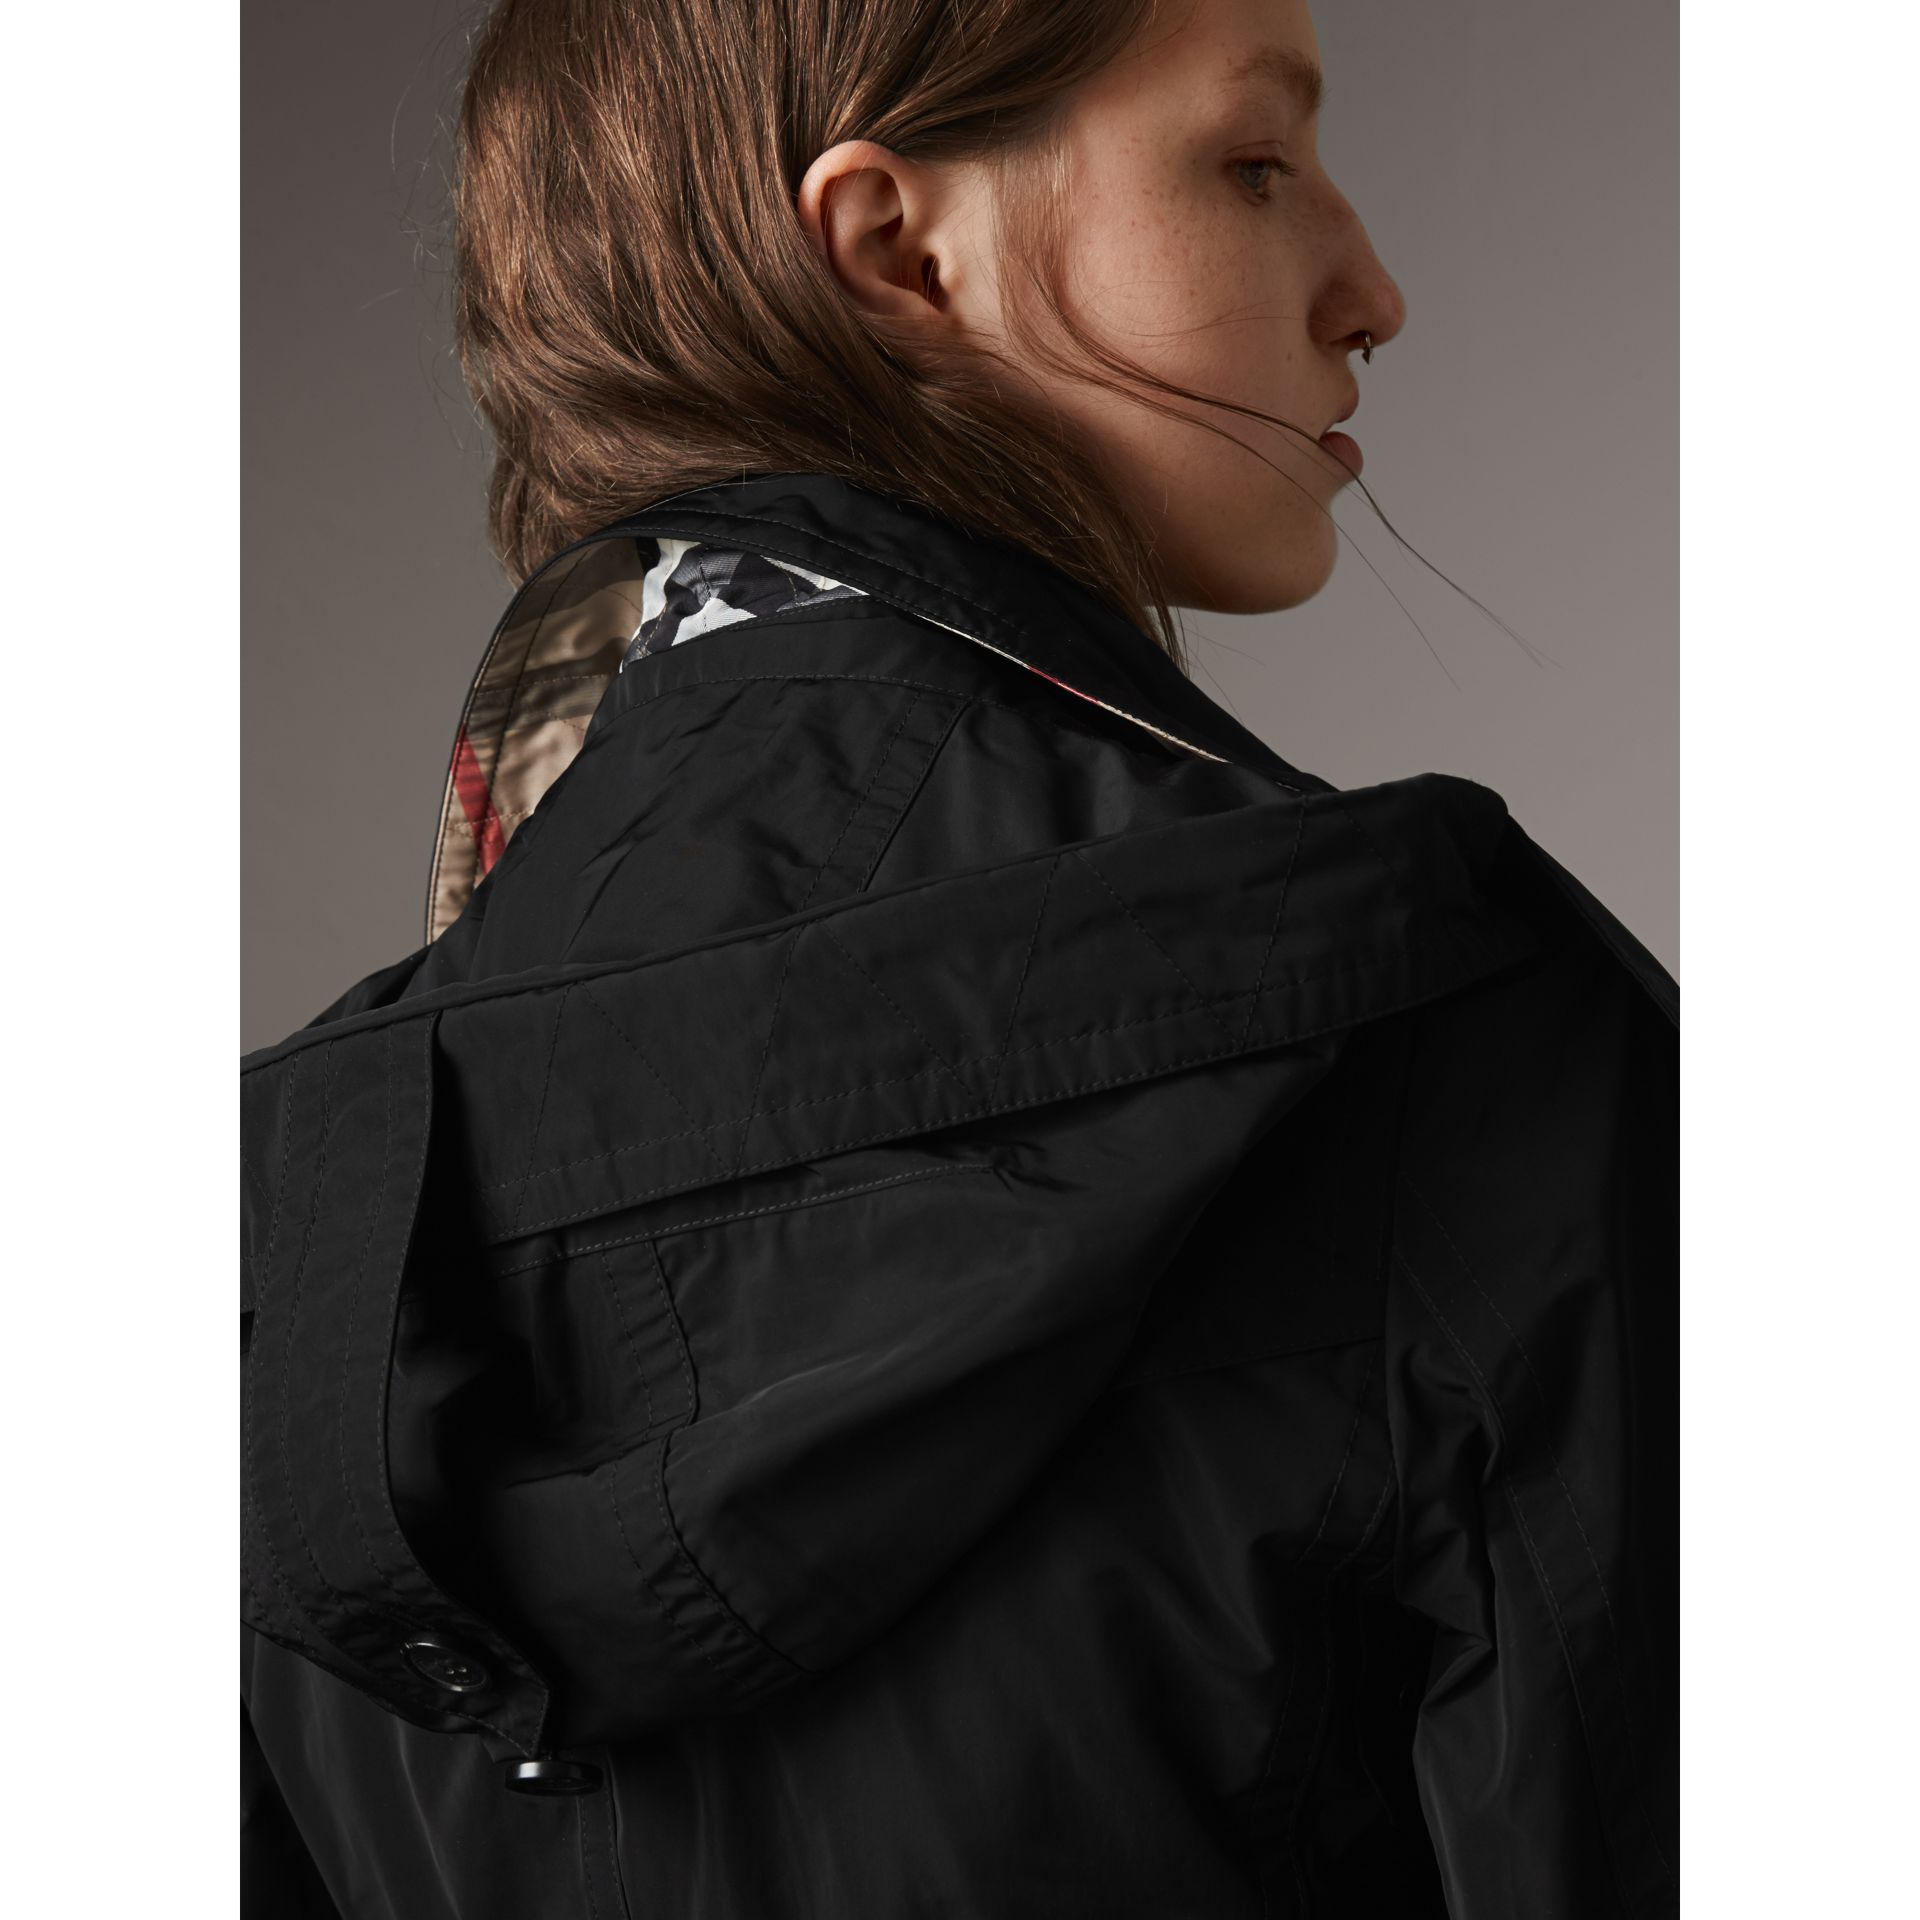 Taffeta Trench Coat with Detachable Hood in Black - Women | Burberry - gallery image 2